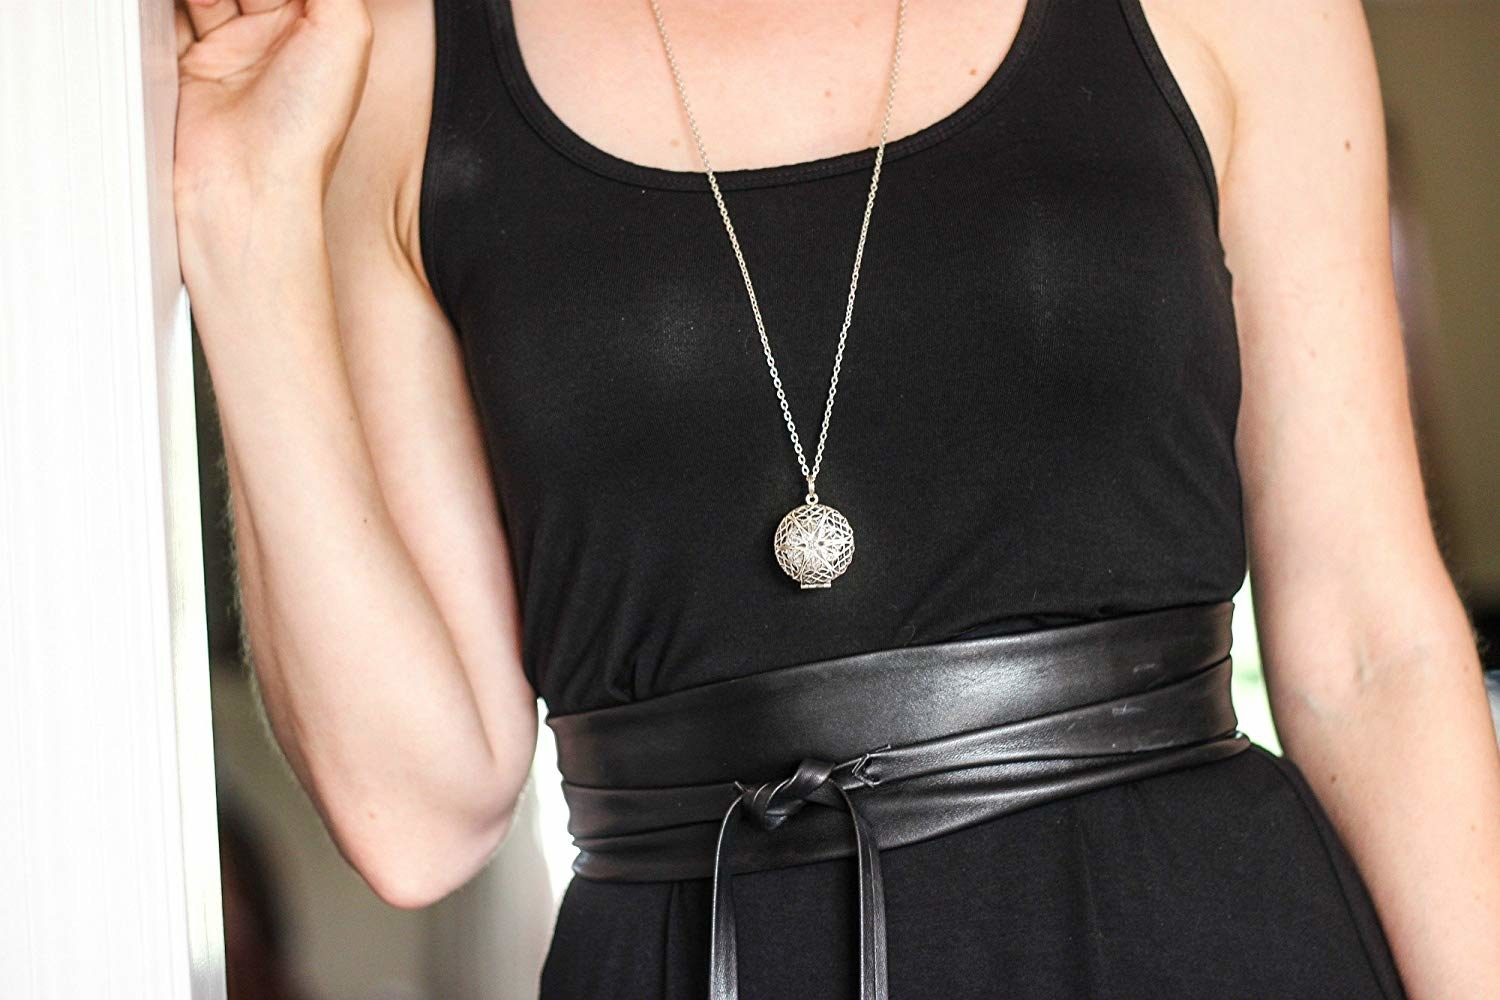 Close up of the aromatherapy diffuser necklace around a model's neck